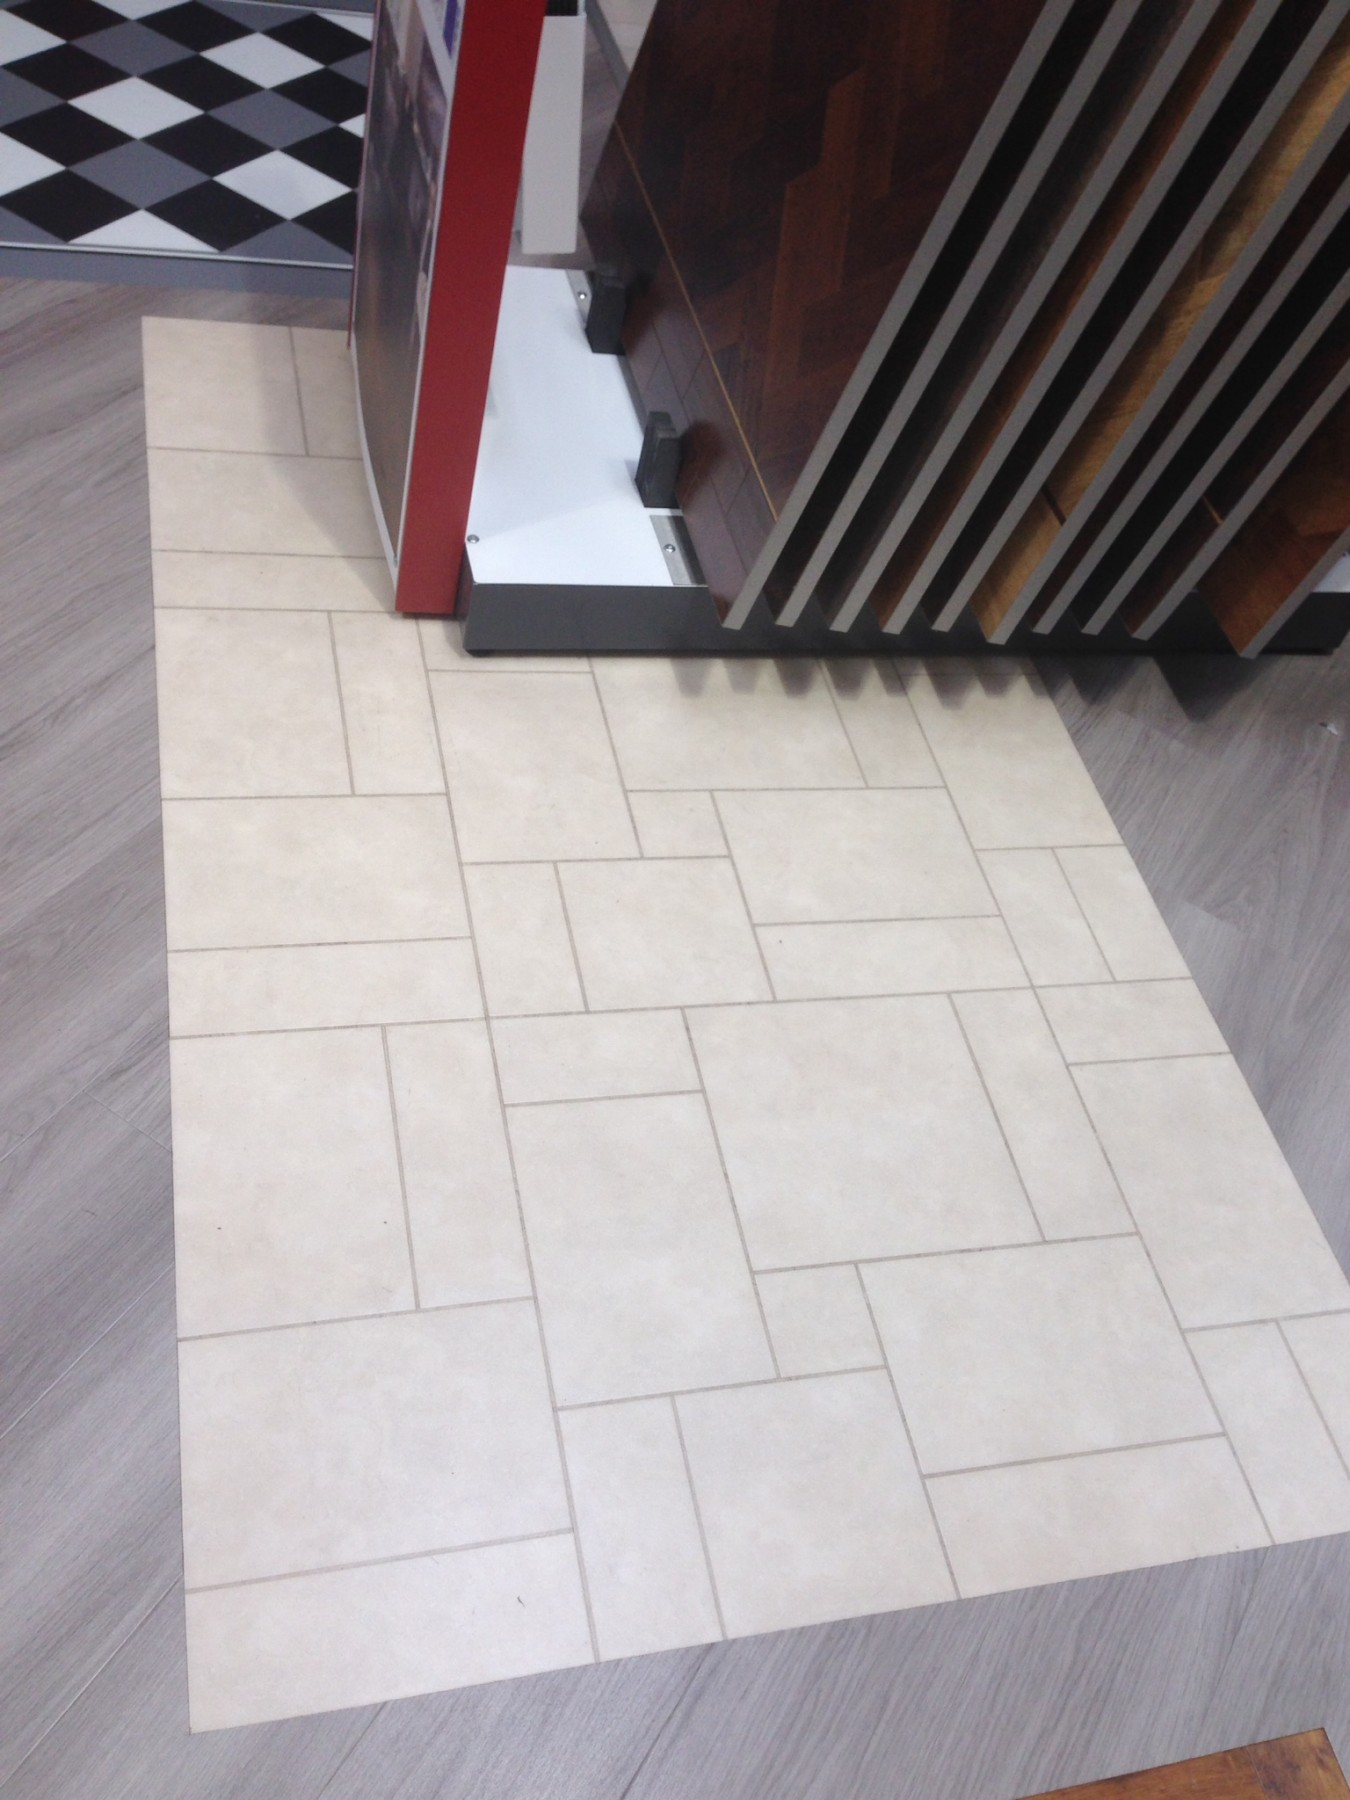 Flooring showroom with stacked tiles with a grey and cream flooring down